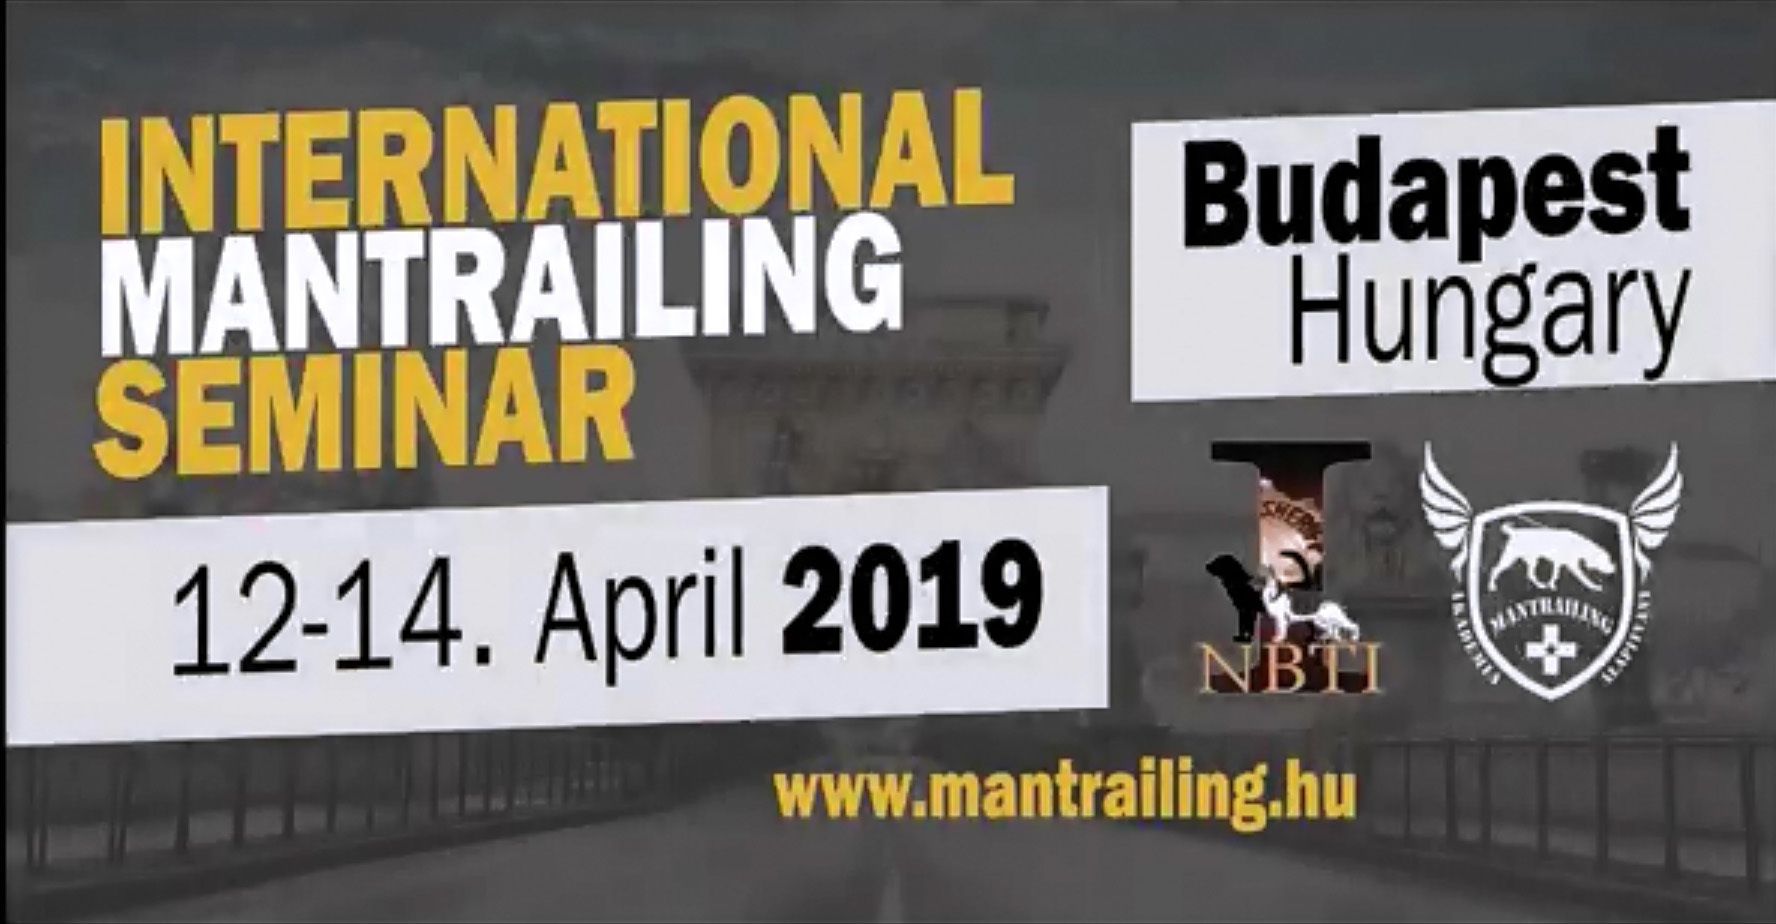 International Mantrailing Seminar Budapest 12-14.04.2019